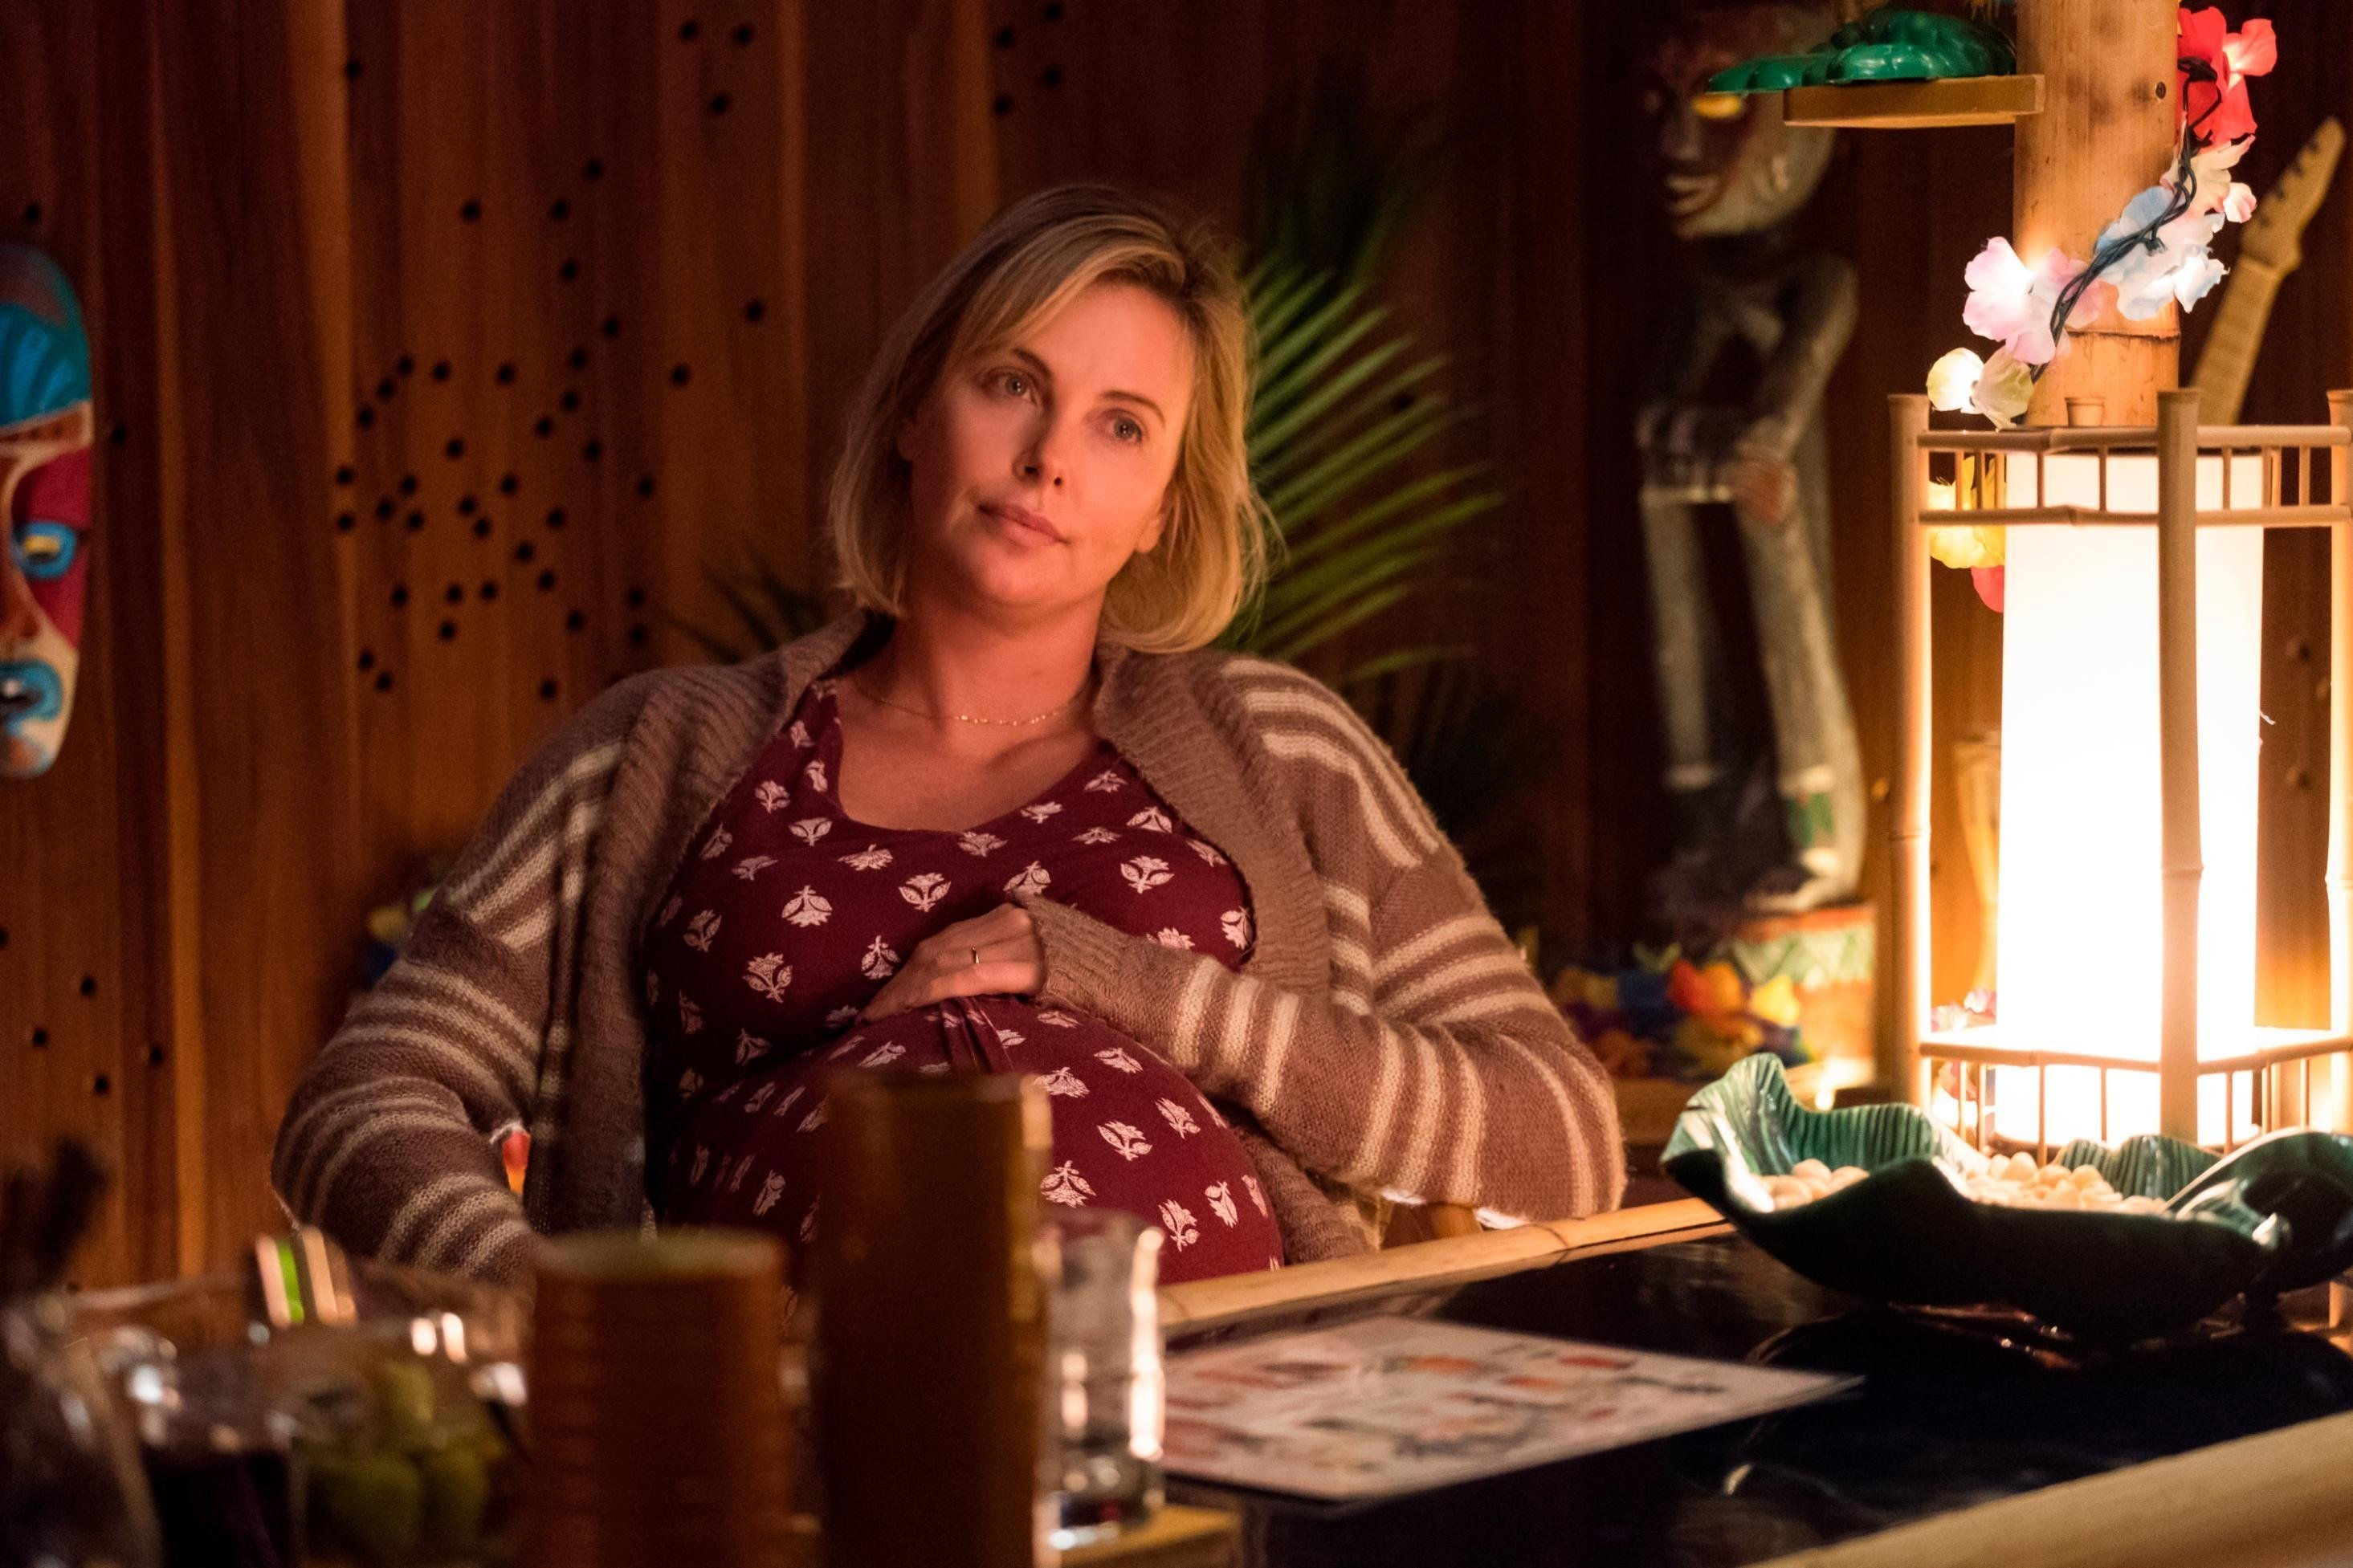 Charlize Theron's latest dramedy highlights motherhood highs and lows